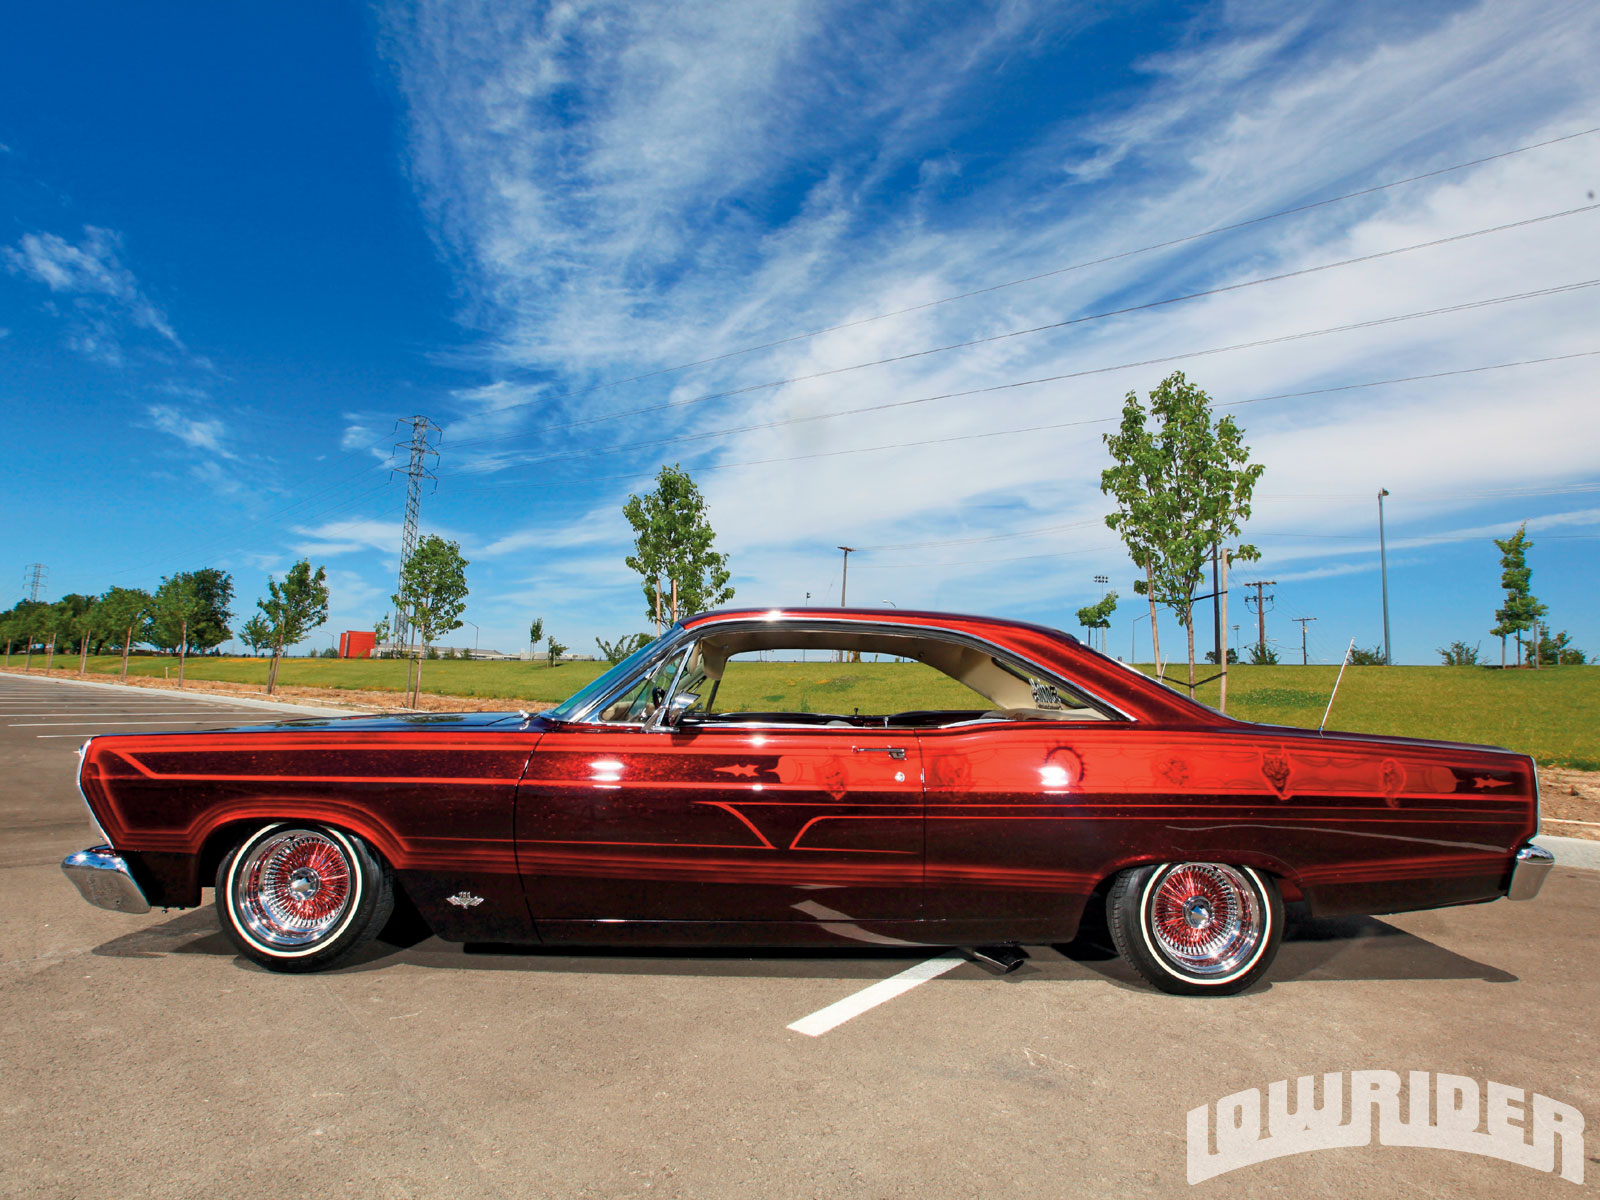 Socios Car Club - Car Club Profile - Lowrider Magazine